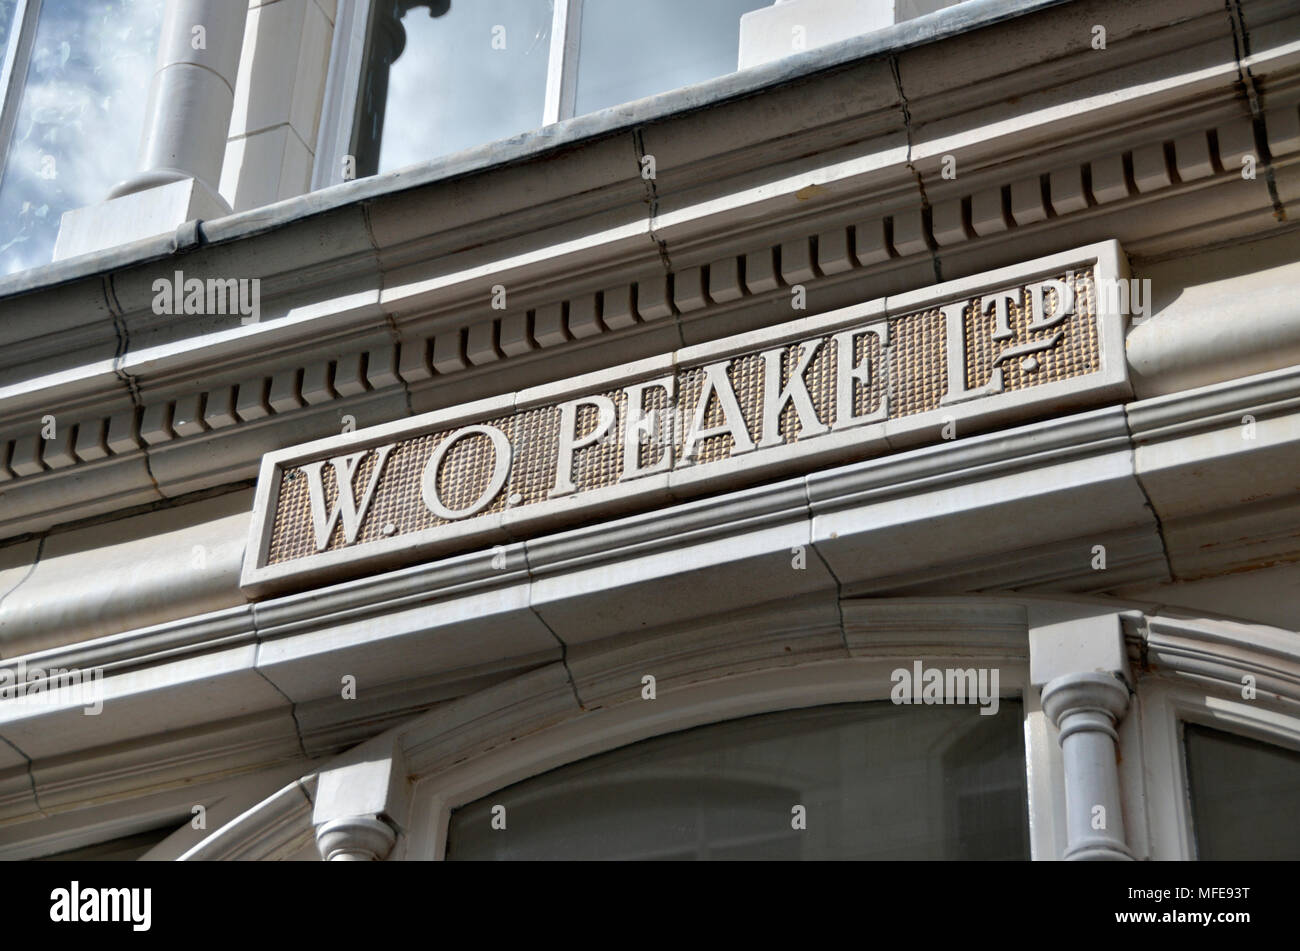 W O Peake Ltd carved stone sign, Radiant House, Mortimer Street, Fitzrovia, London, UK. - Stock Image